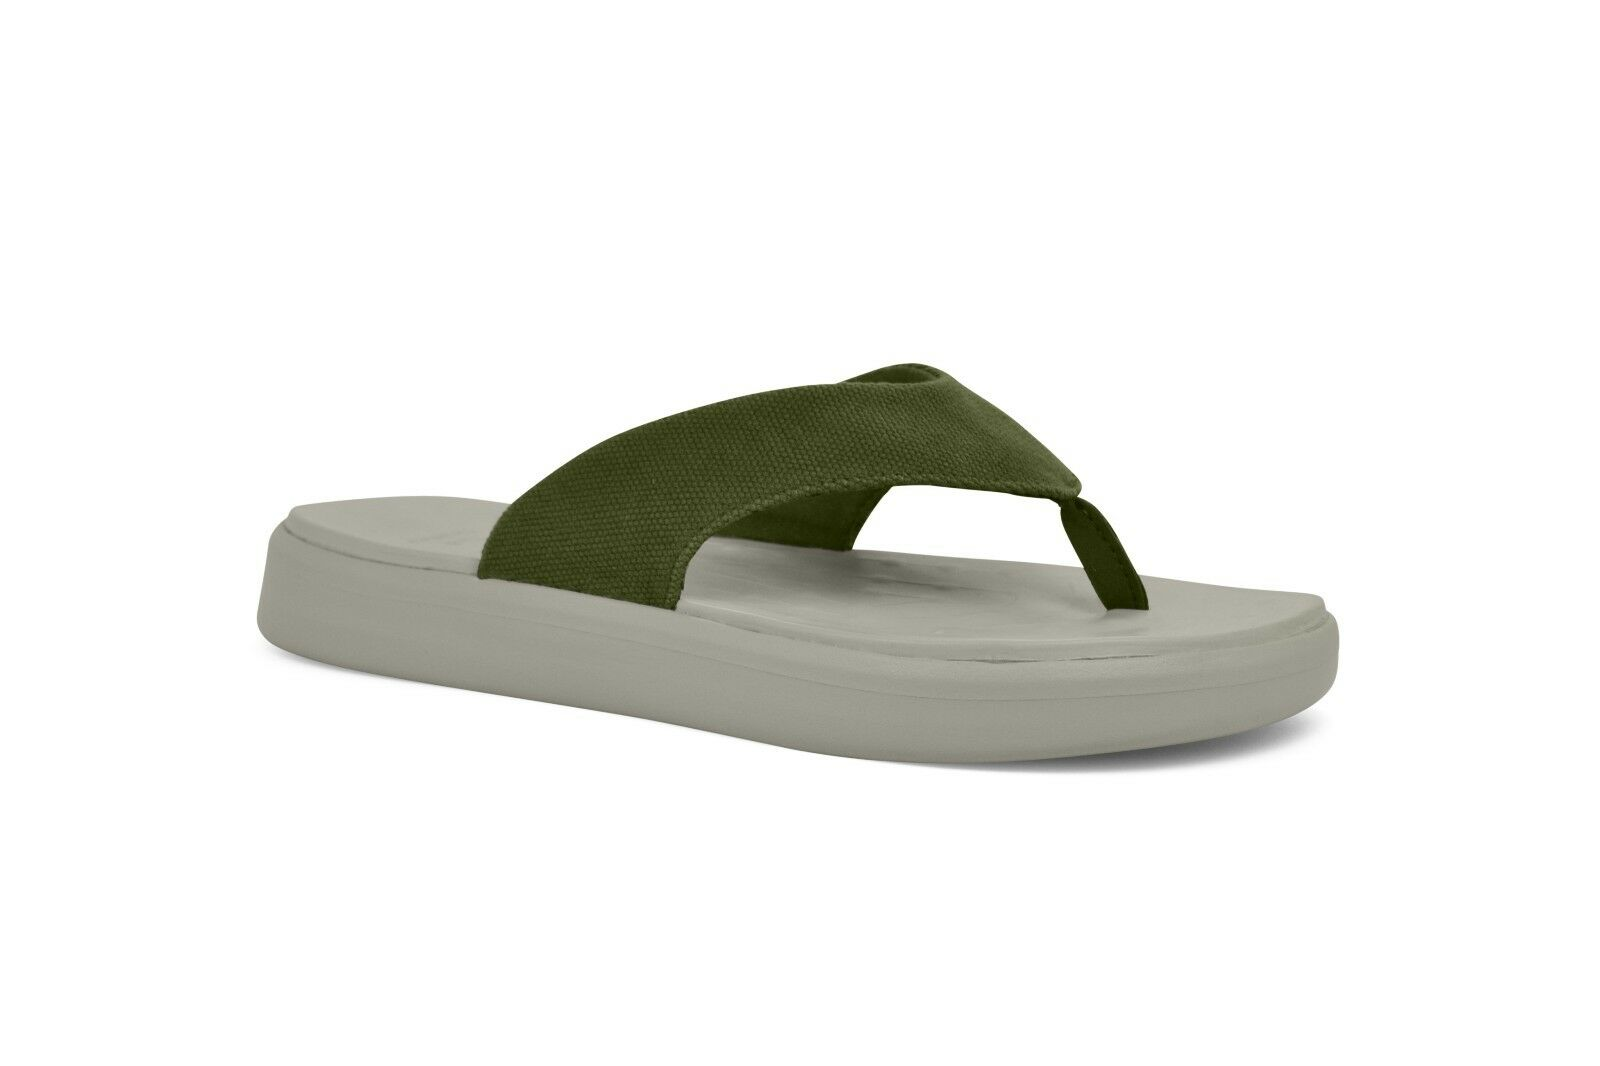 SoftScience The Skiff 3.0 Canvas Sandalen Zehentrenner Badelatschen Sage Grün